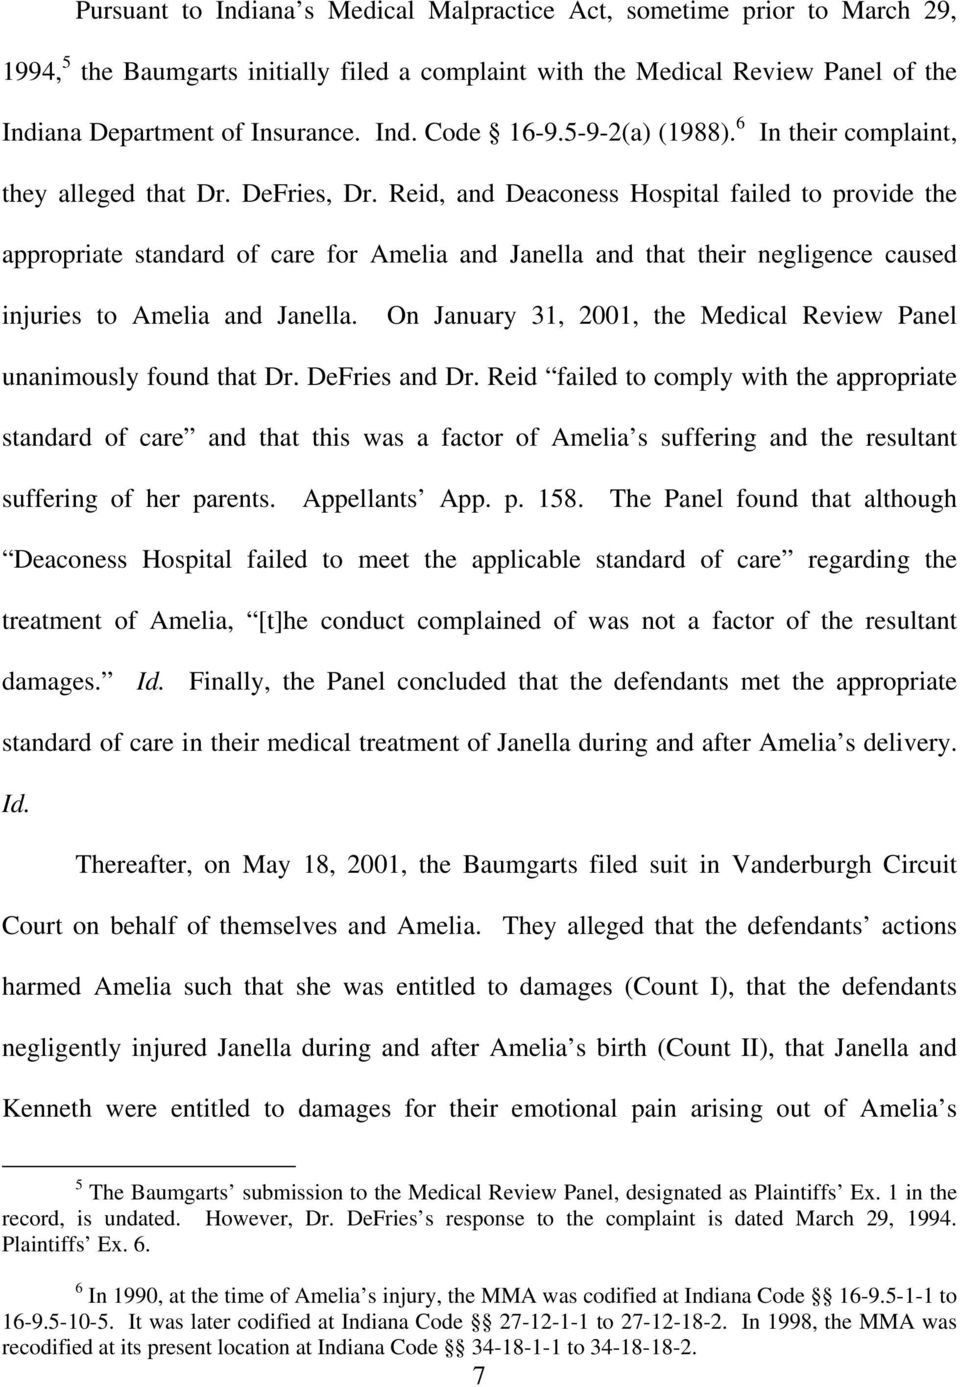 Reid, and Deaconess Hospital failed to provide the appropriate standard of care for Amelia and Janella and that their negligence caused injuries to Amelia and Janella.